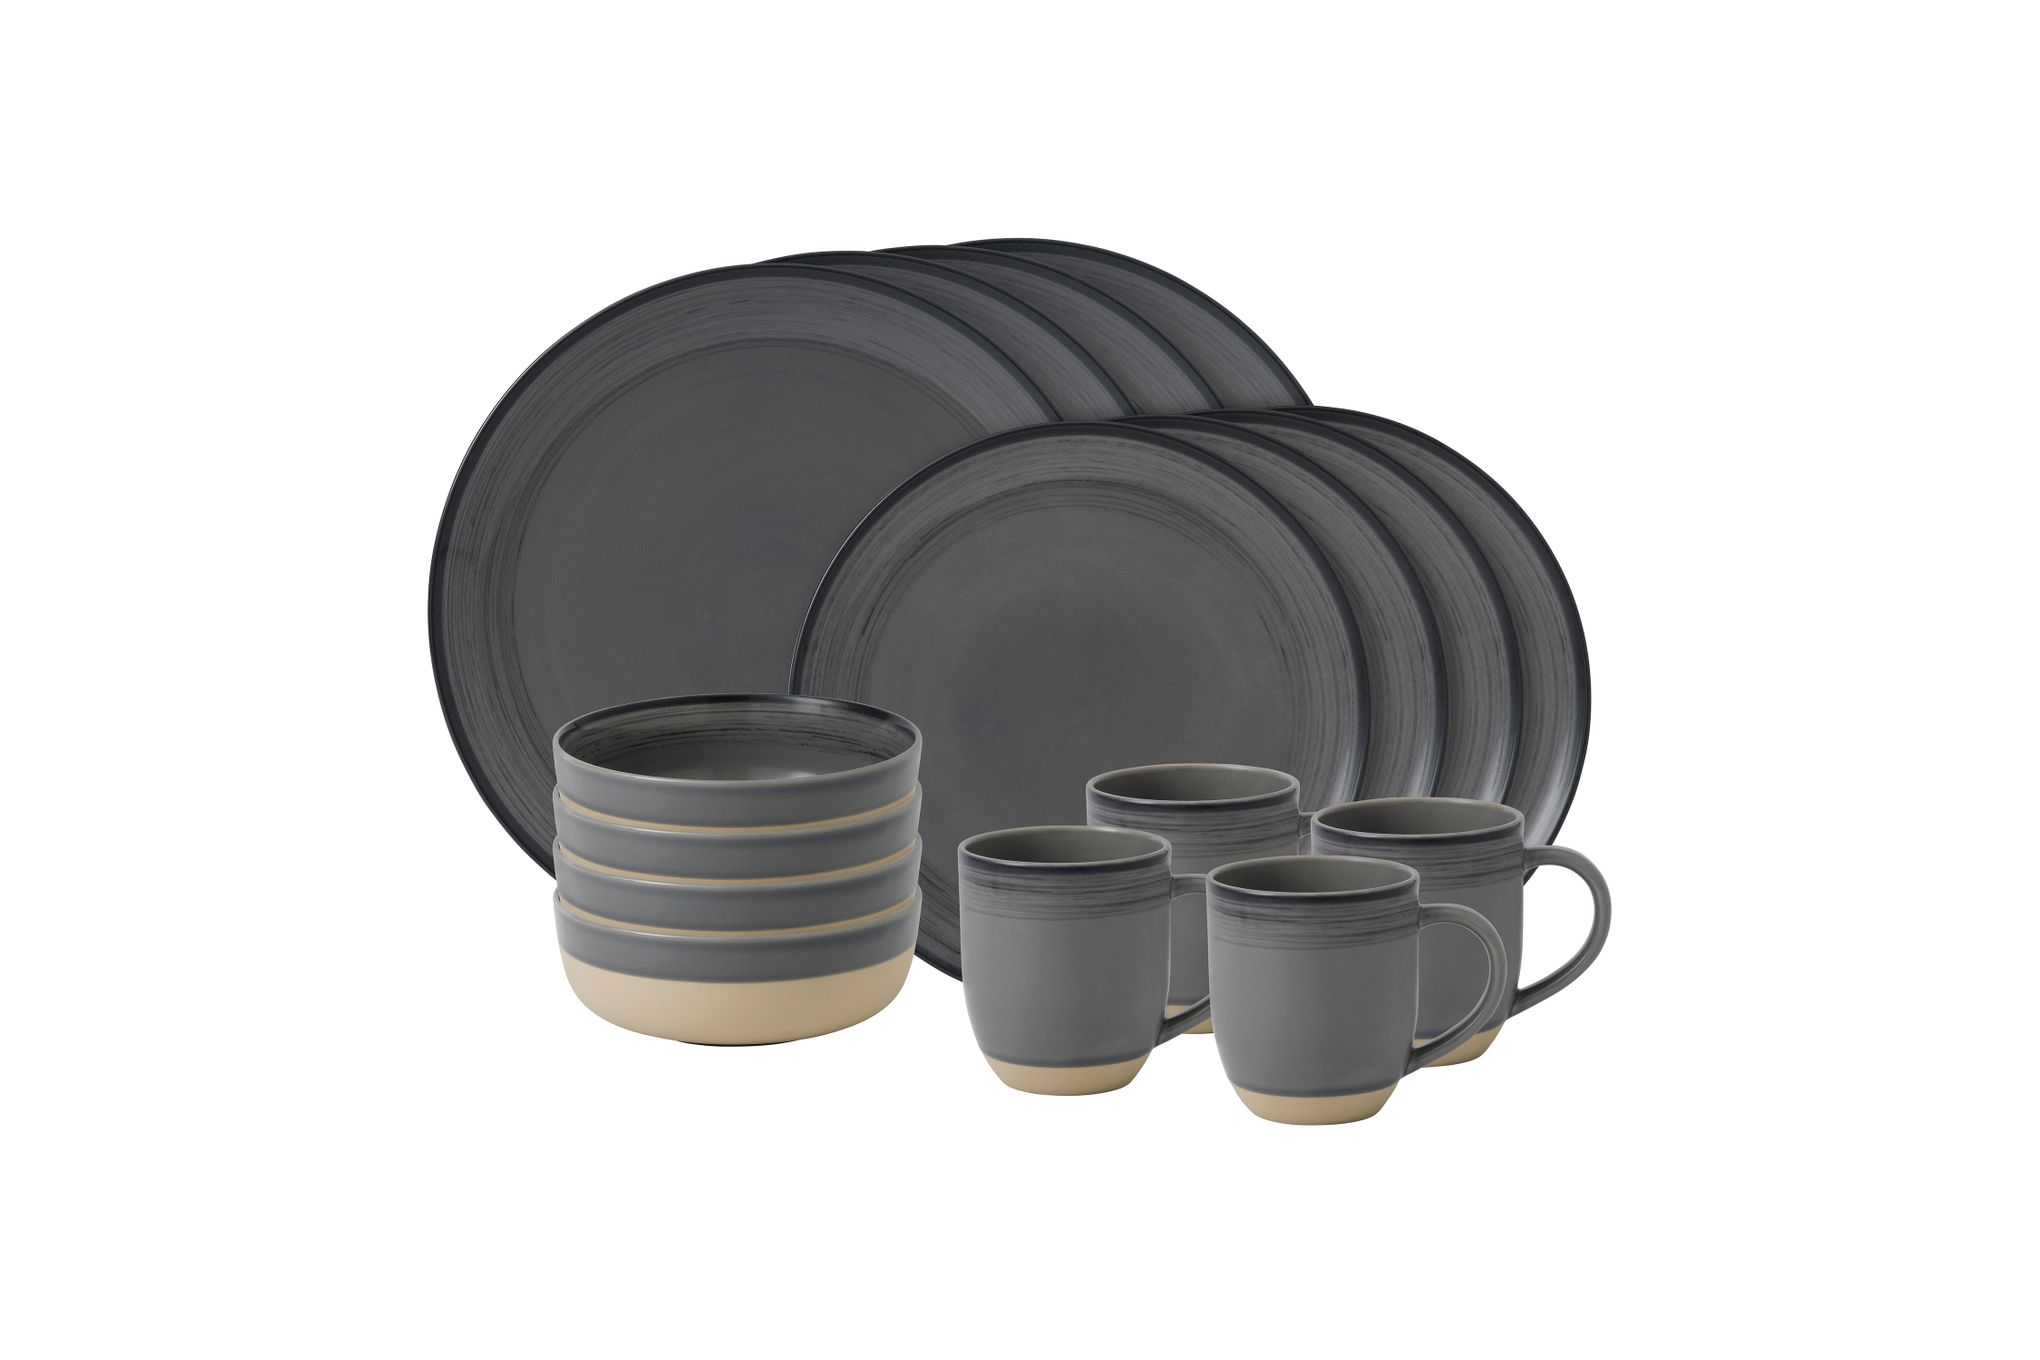 Ellen DeGeneres for Royal Doulton Brushed Glaze Sets 16 Piece Set Grey thumb 1